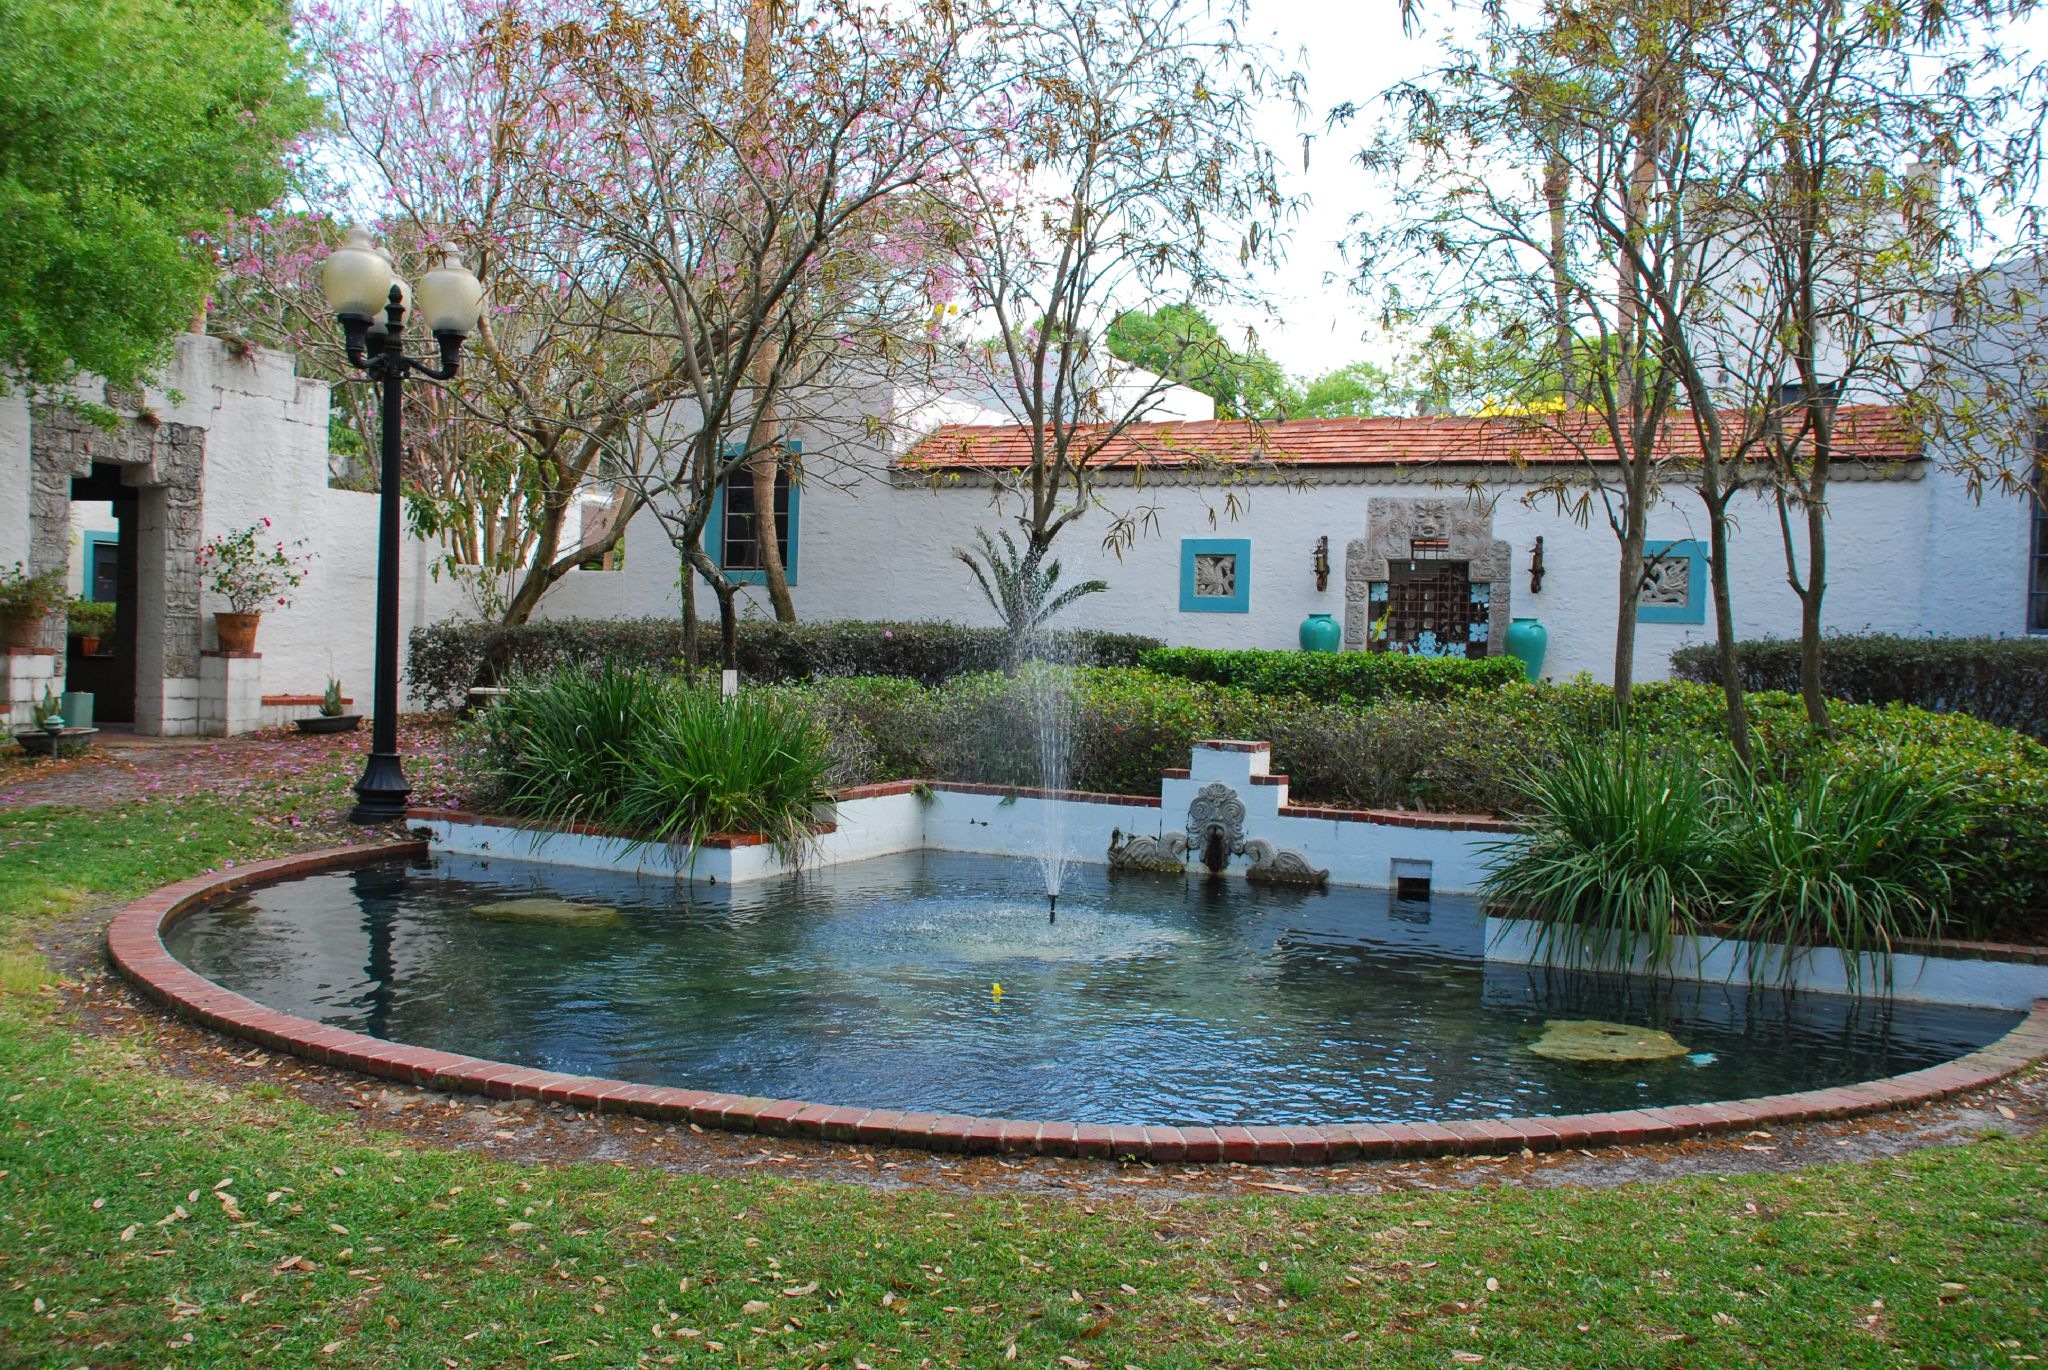 The courtyard of the Maitland Art Center in Orlando, Florida. Image via Flickr by David Lewis